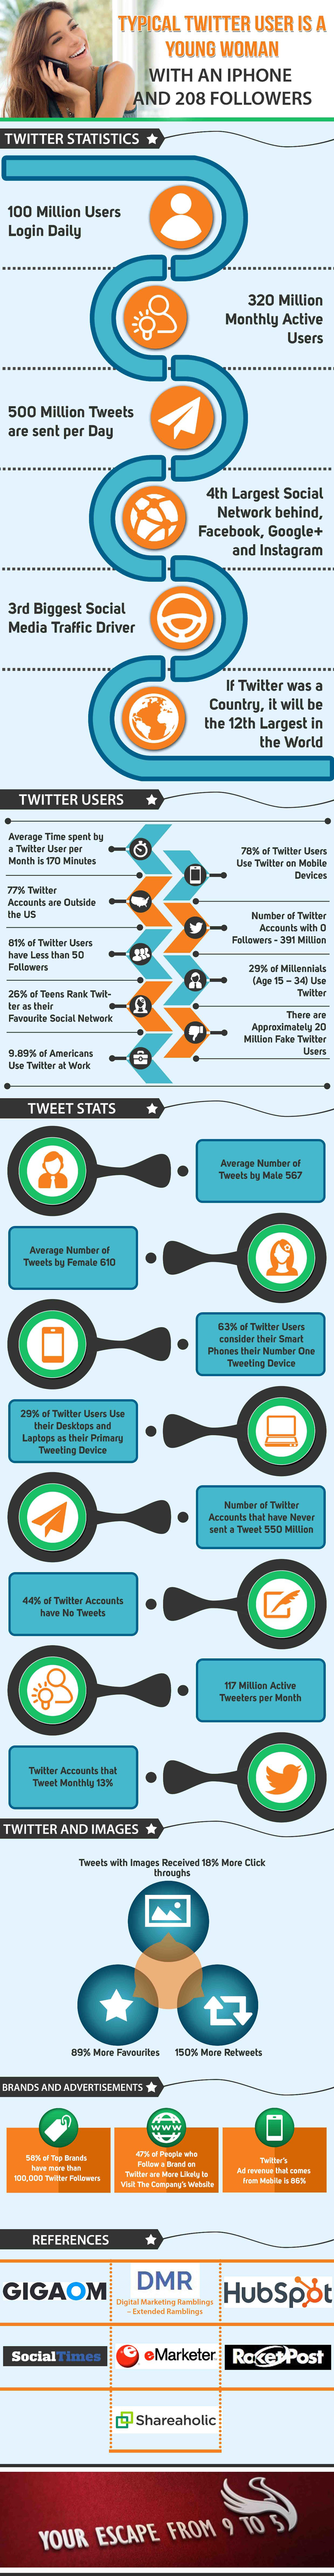 Average-Number-of-Twitter-Followers-is-208-Twitter-Stats-Infographic-v2